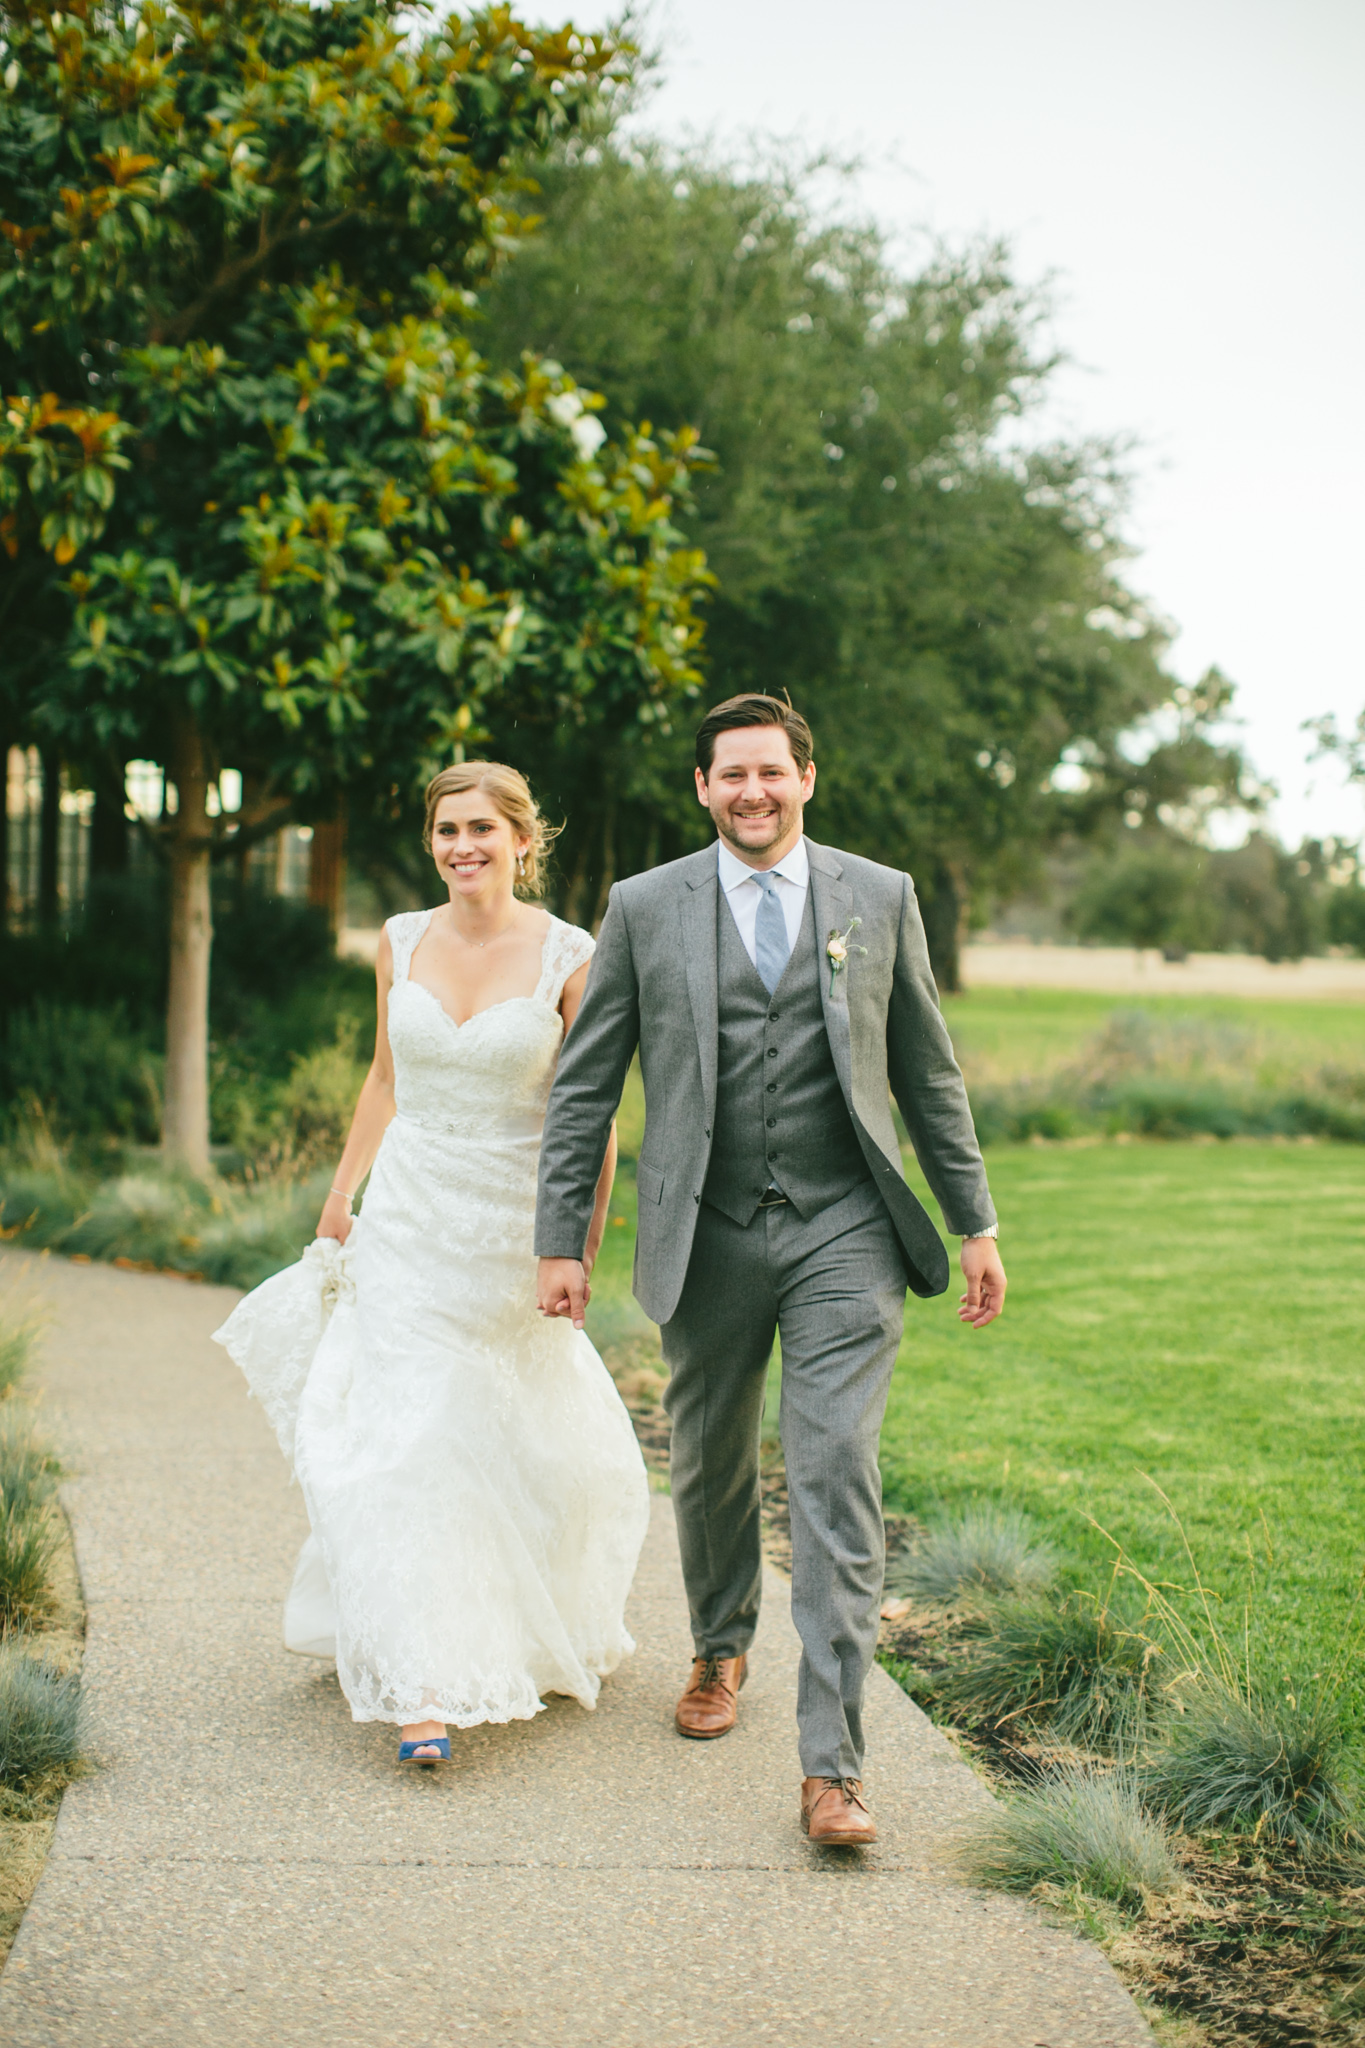 whitney+parker-WEB_BLOG-124